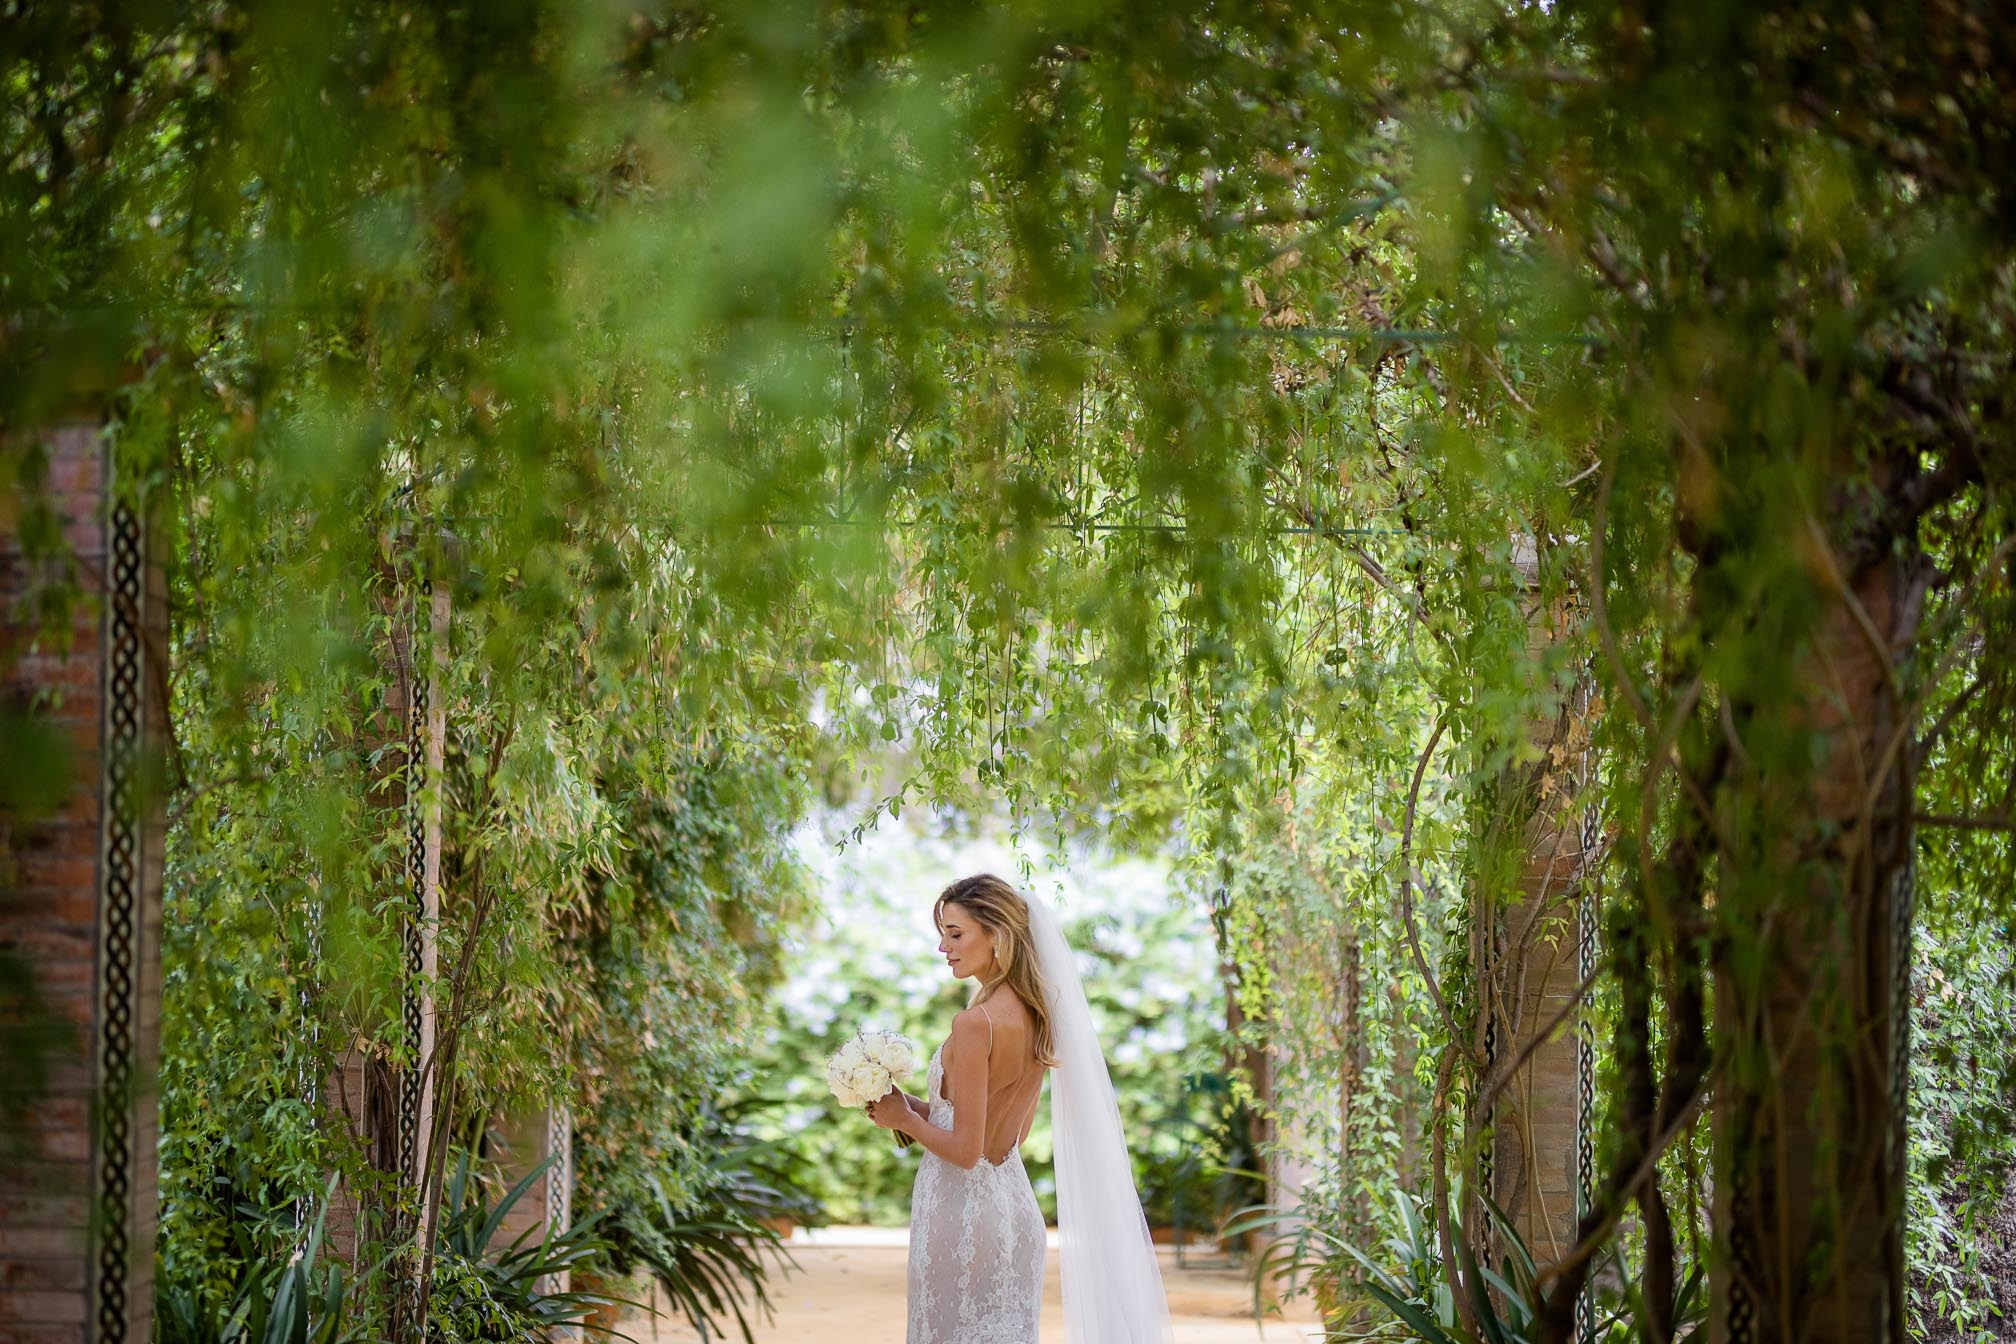 Wedding In Seville – Villa Luisa